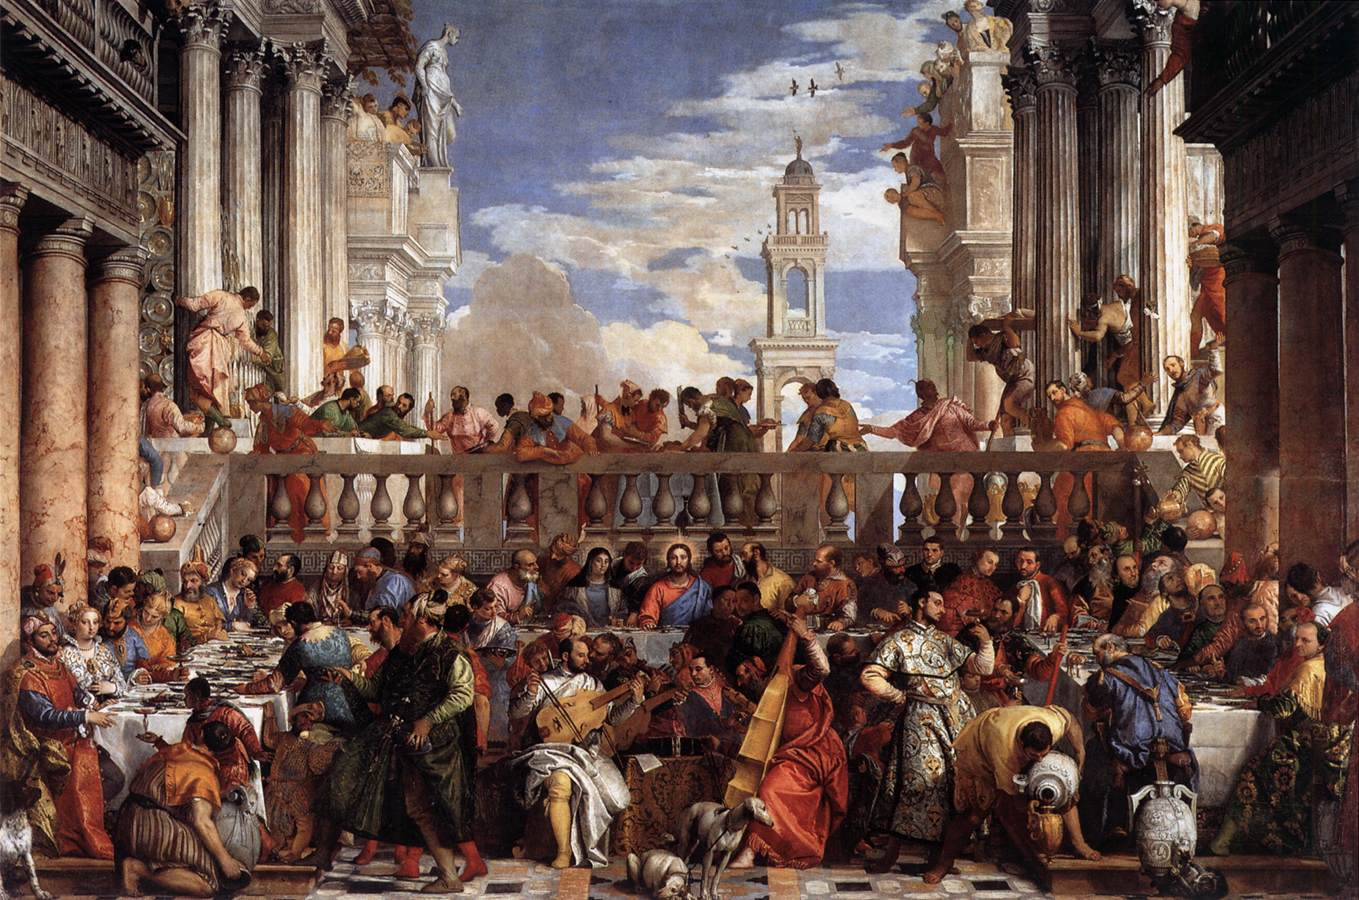 FileThe Marriage At Cana 1563